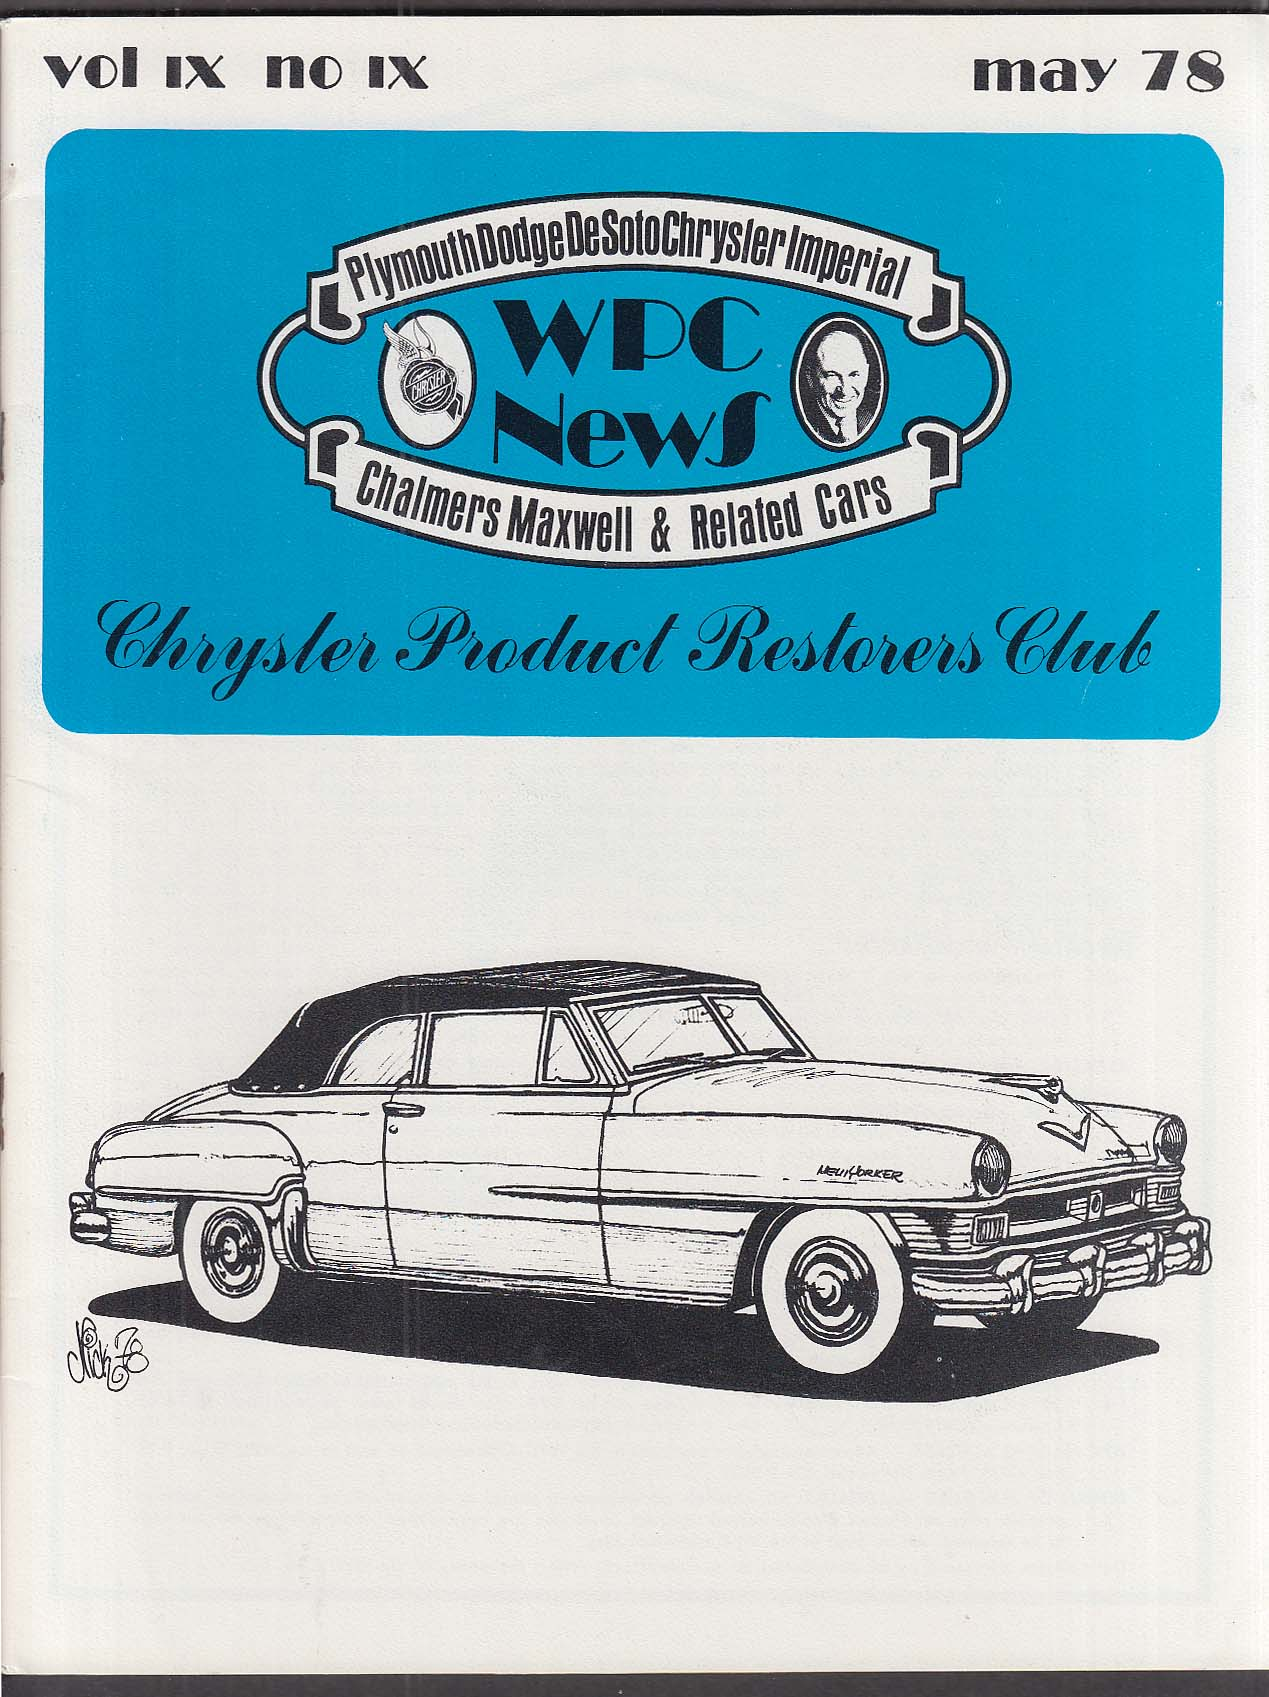 WPC NEWS 1951 1952 Chrysler 5 1978